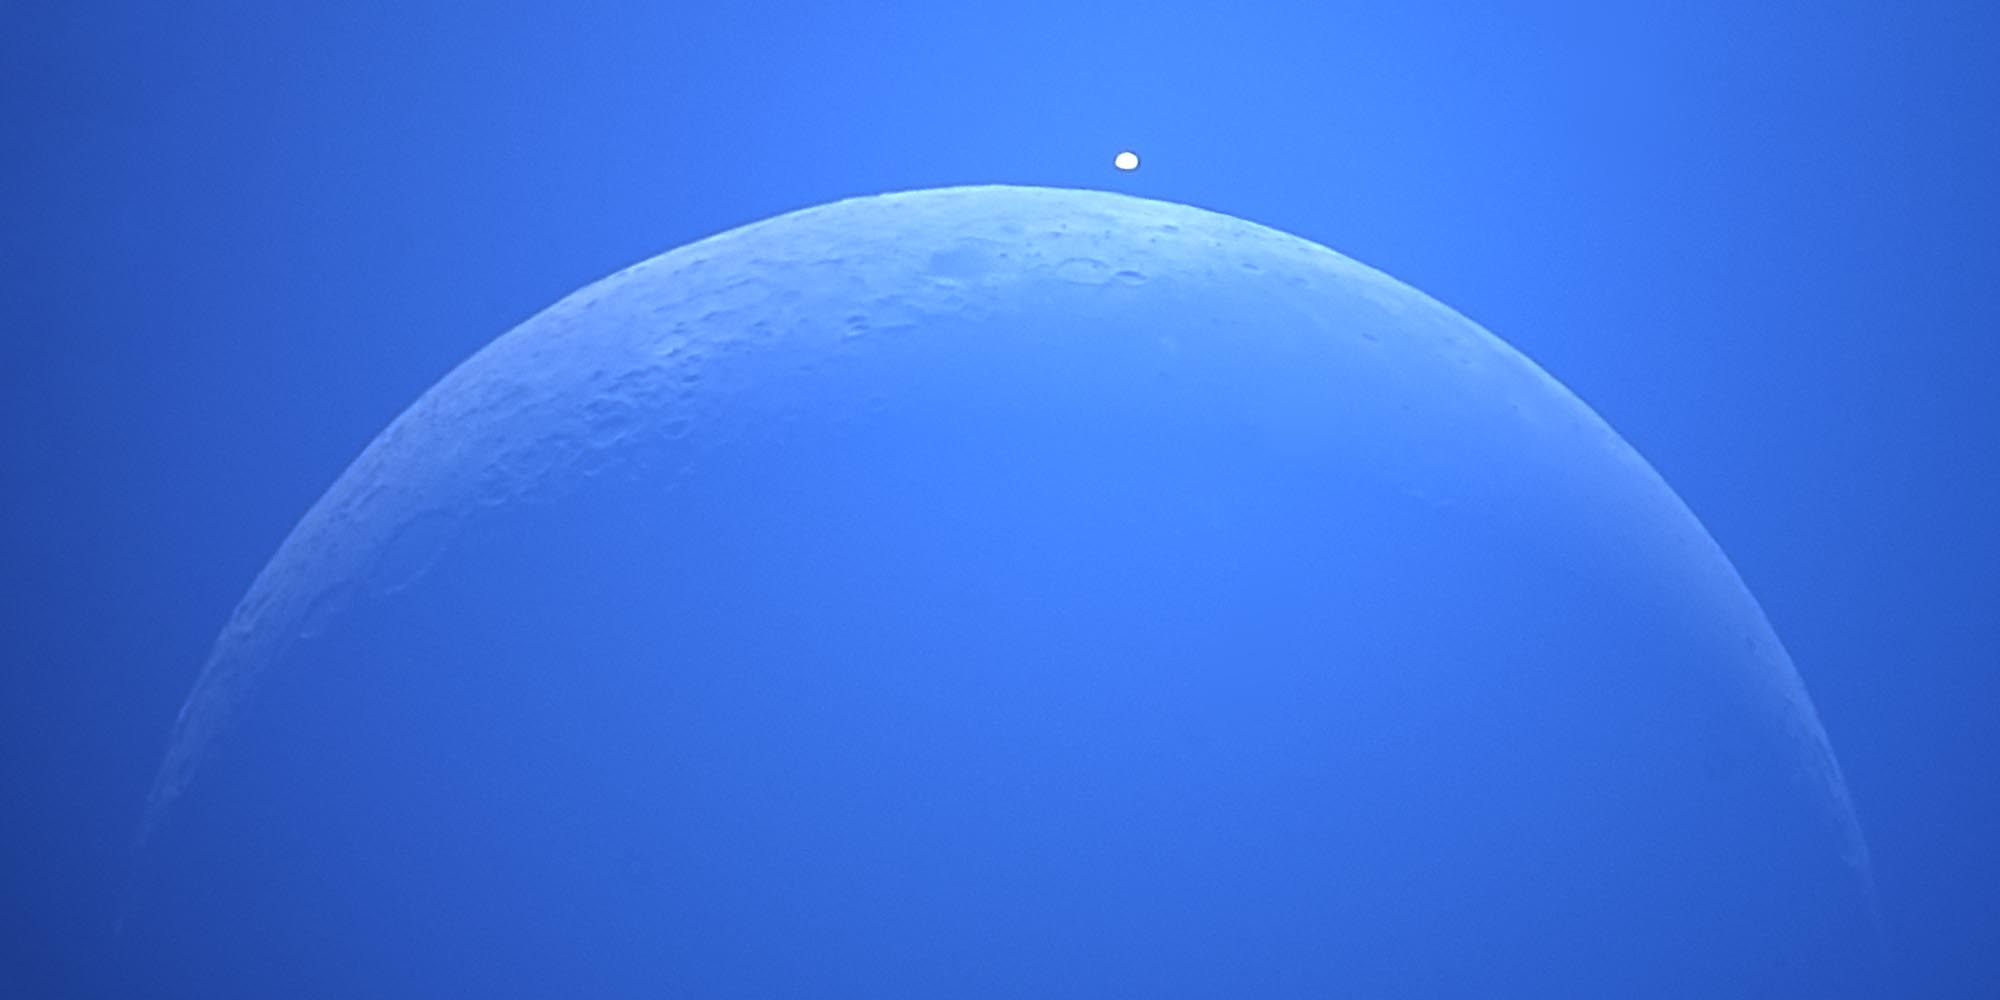 Lunar occultation of Venus